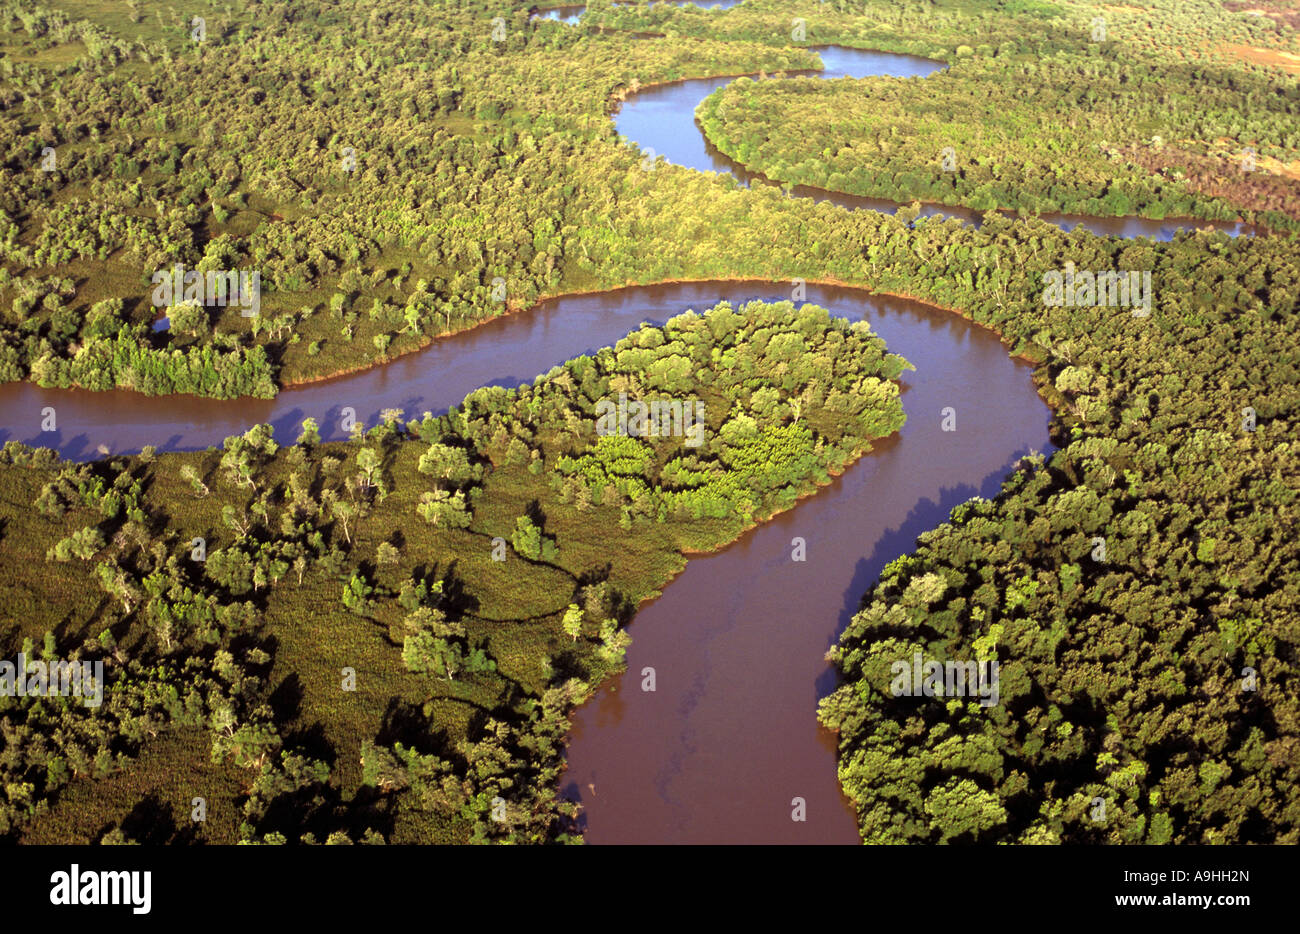 Aerial view of mangrove swamps , Madagascar - Stock Image